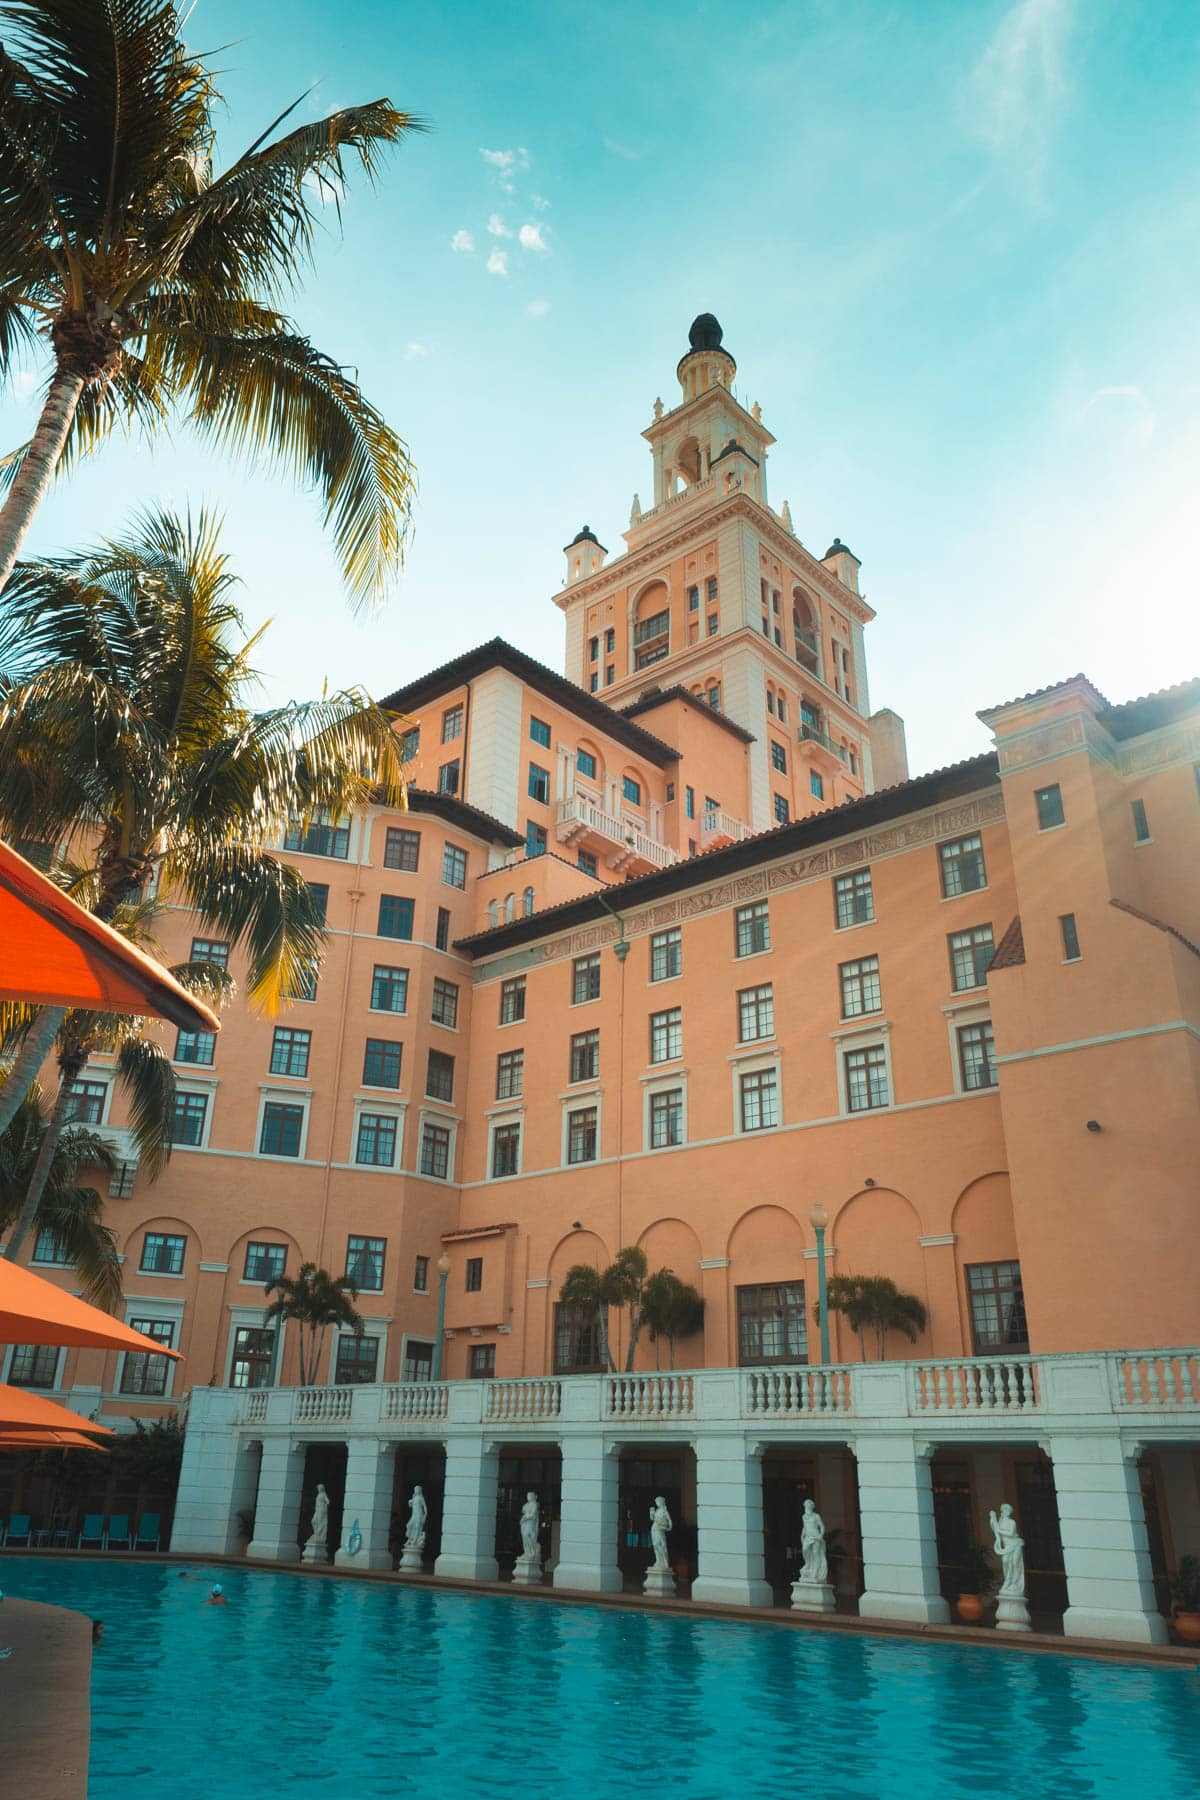 The Biltmore Hotel Coral Gables - Must See in Miami